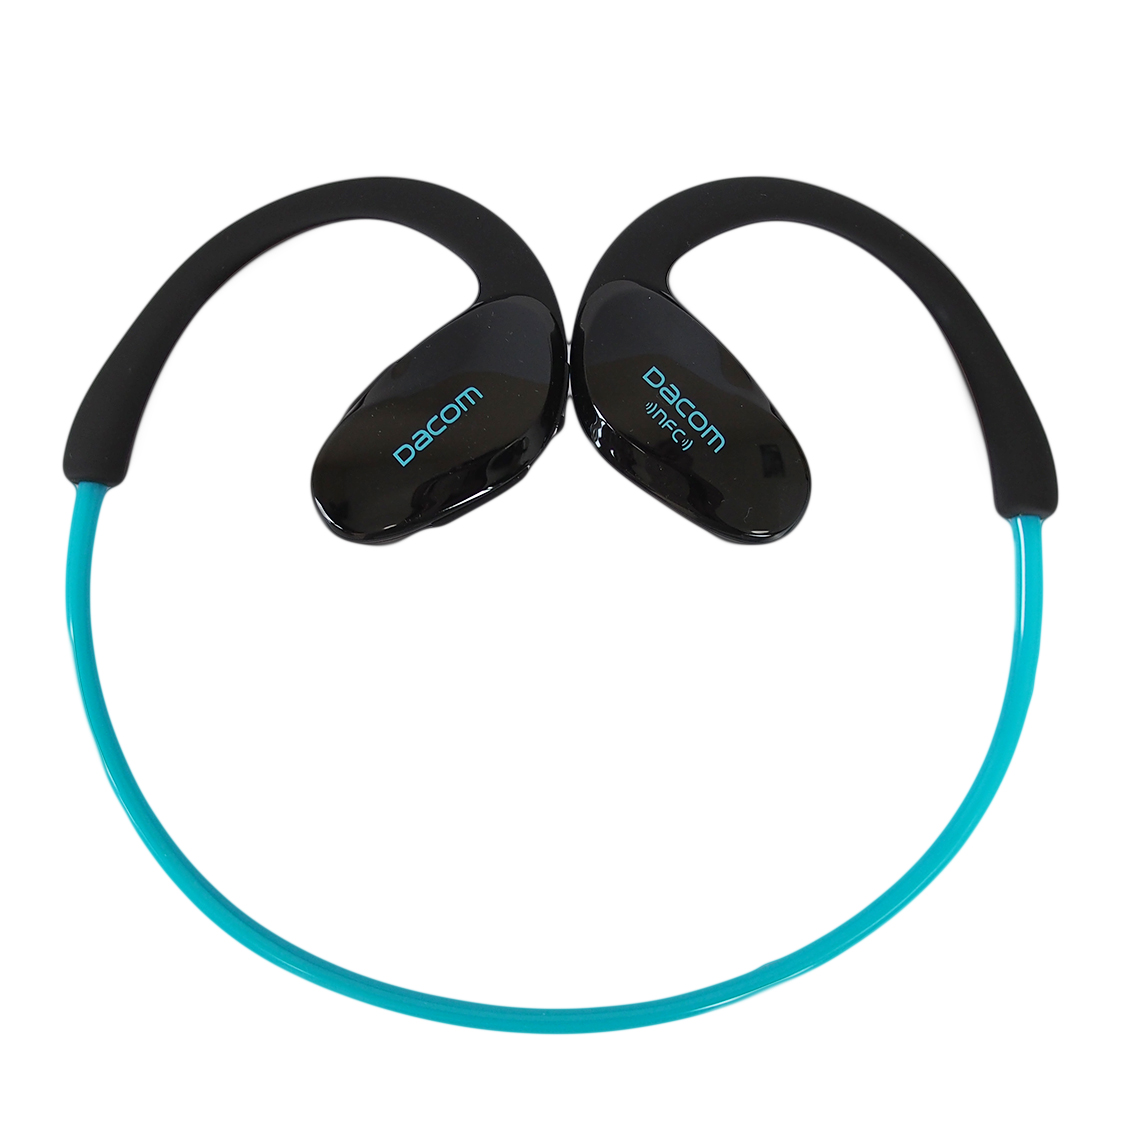 เครื่องเล่น MP3 Bluetooth สำหรับกีฬา